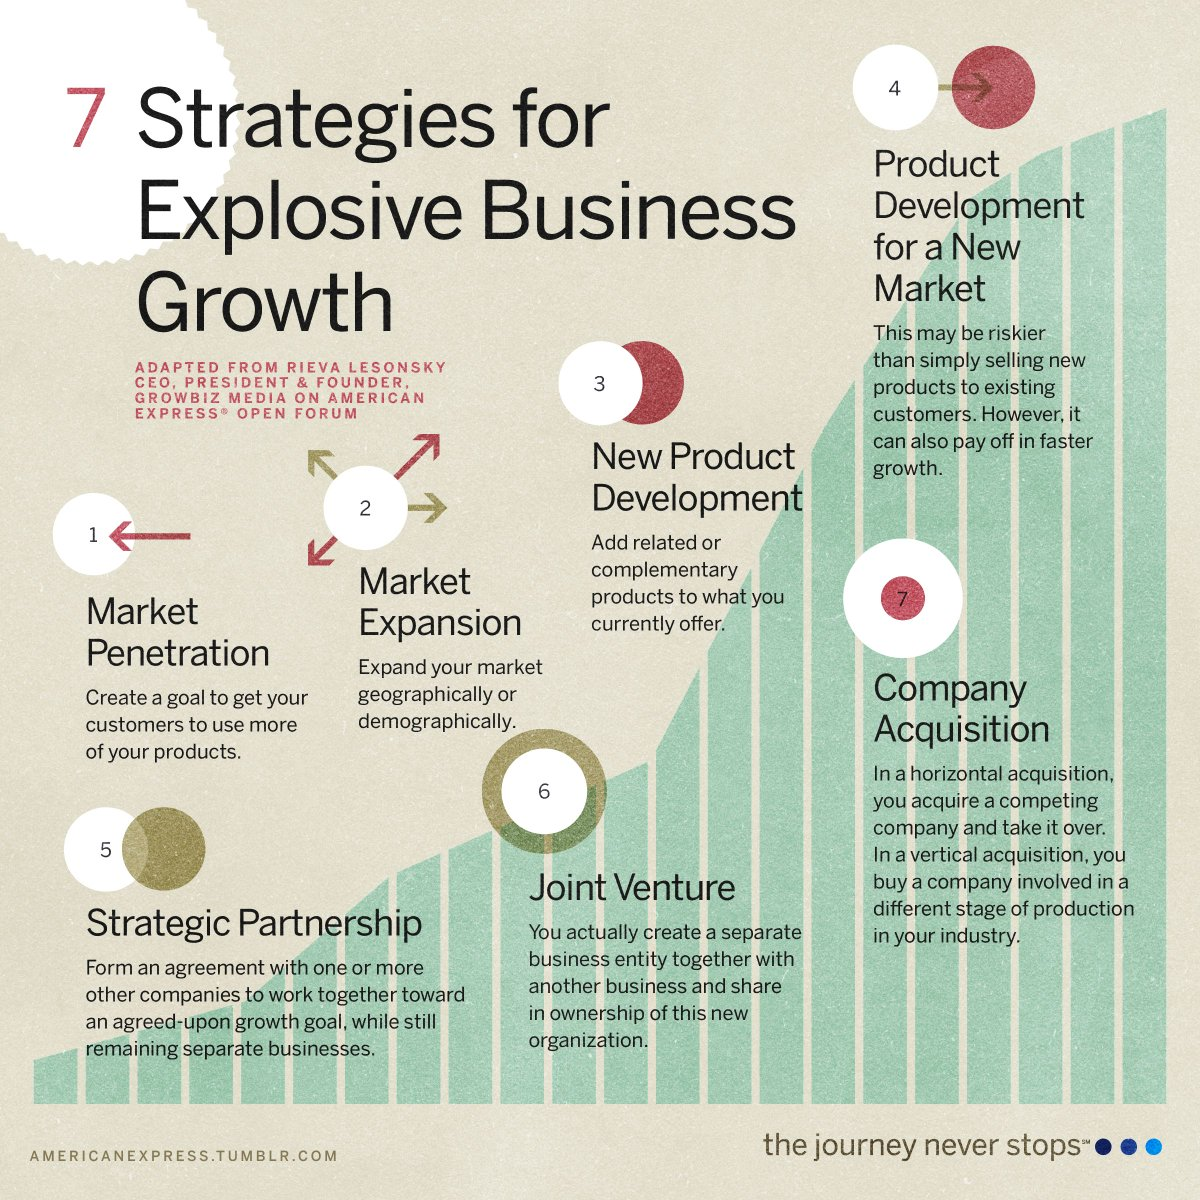 &quot;7 strategies for explosive business growth&quot; #Internet #InternetMarketing #SEO #SMM #SEOtips #GrowthHacking #Marketing #SocialMedia  #OnlineMarketing #EmailMarketing #SEO #SMM #webdesign #website #ecommerce #DigitalMarketing  #Business #InboundMarketing<br>http://pic.twitter.com/8EKWyA2znQ